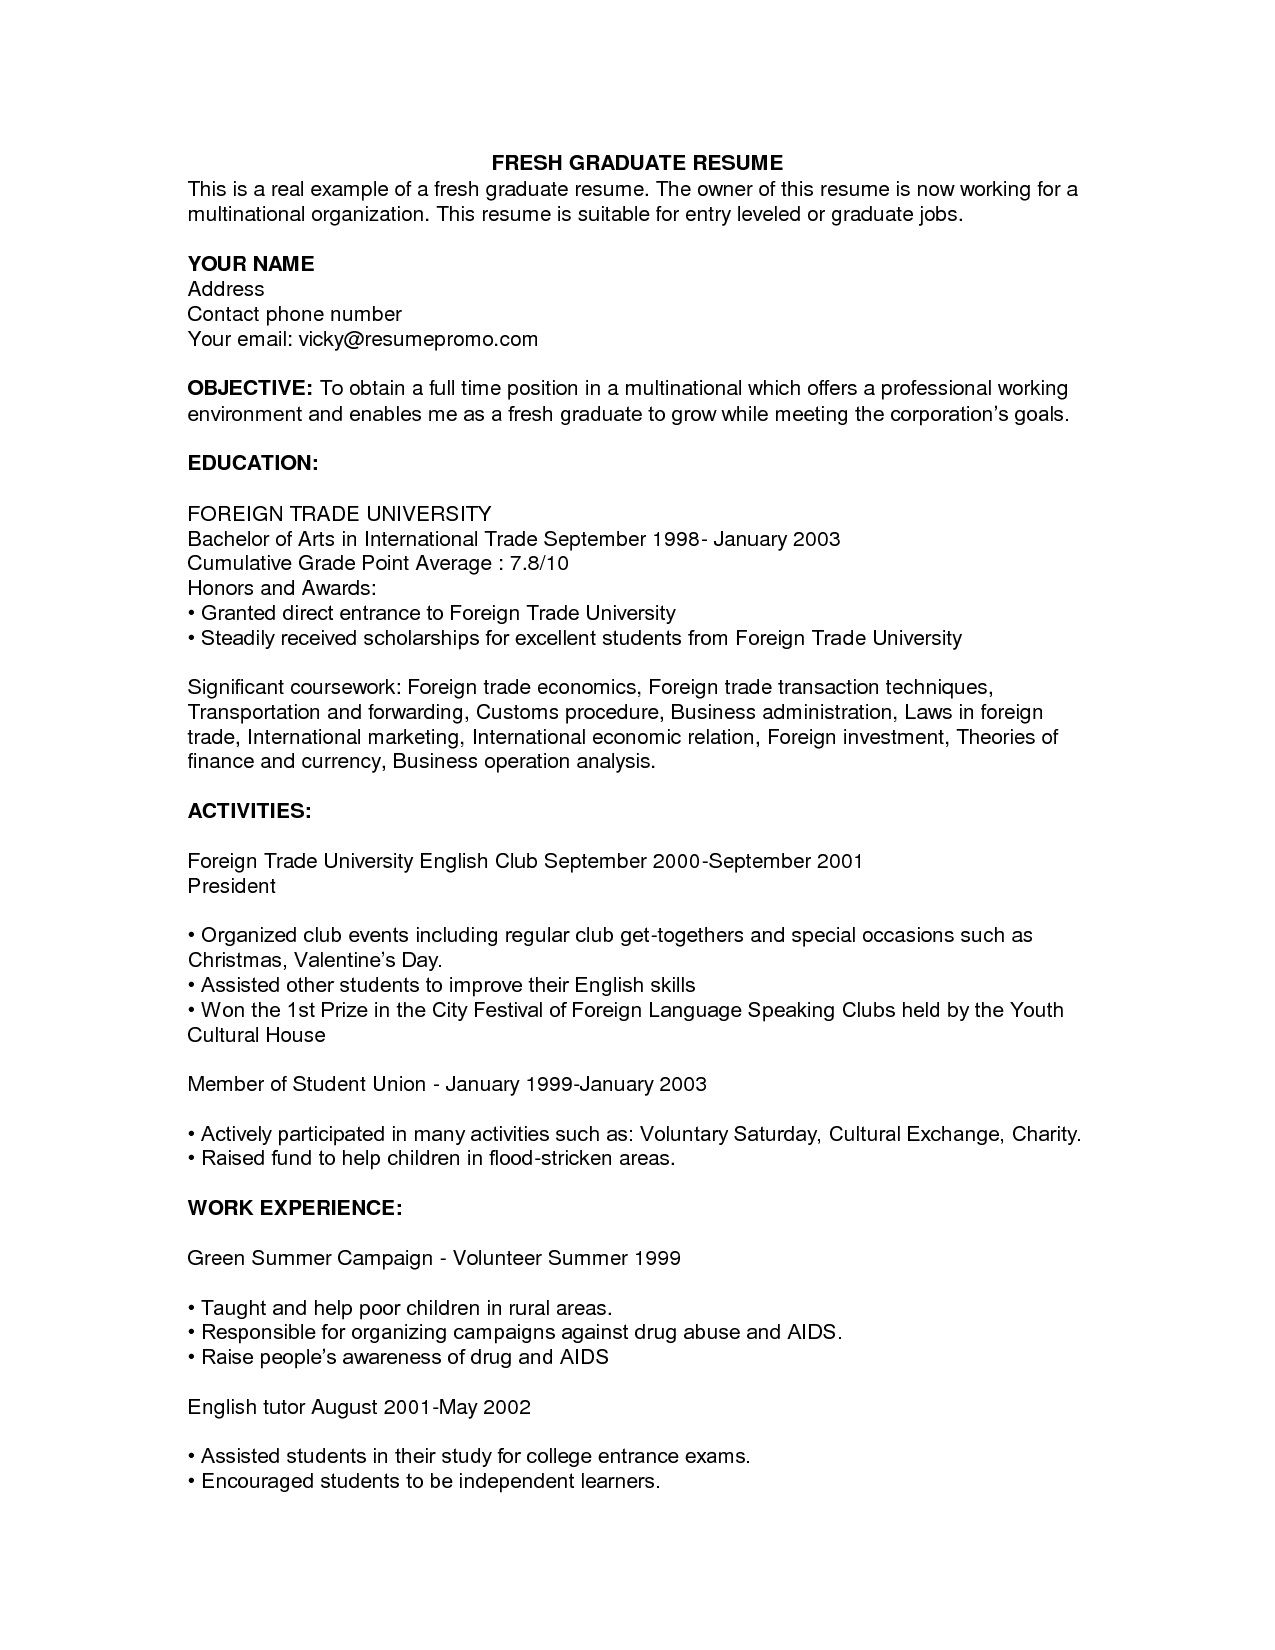 Audio Dsp Engineer Sample Resume Example Of Resume For Fresh Graduate  Httpjobresumesample